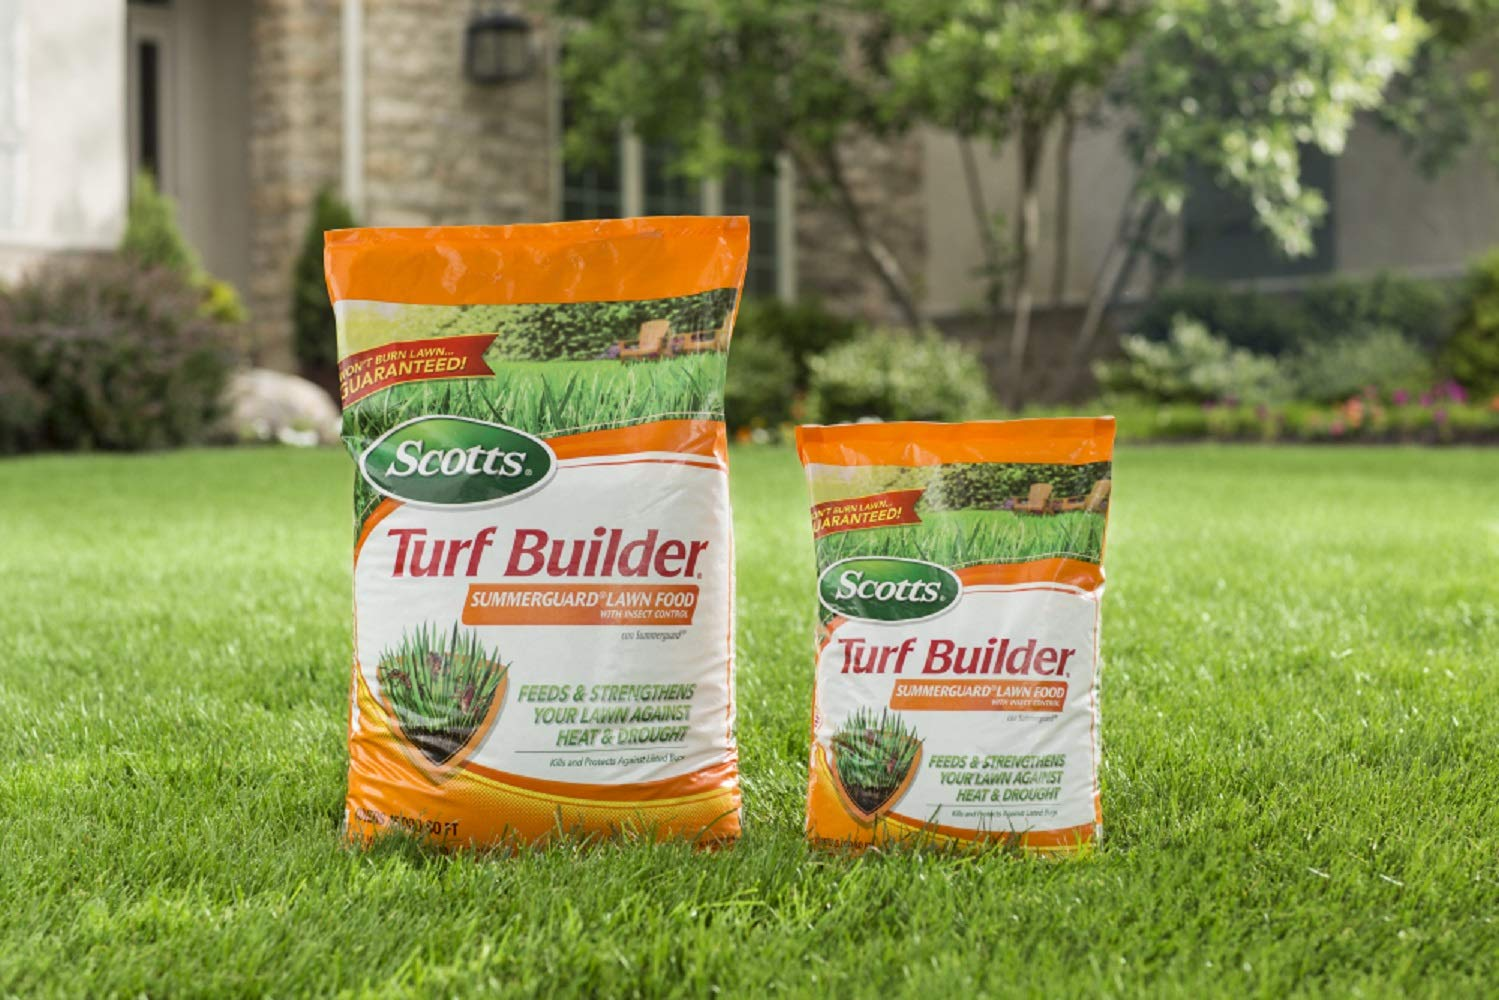 Scotts 49013 Turf Builder SummerGuard Lawn Food with Insect Control 13.35 lb, 5 M by Scotts